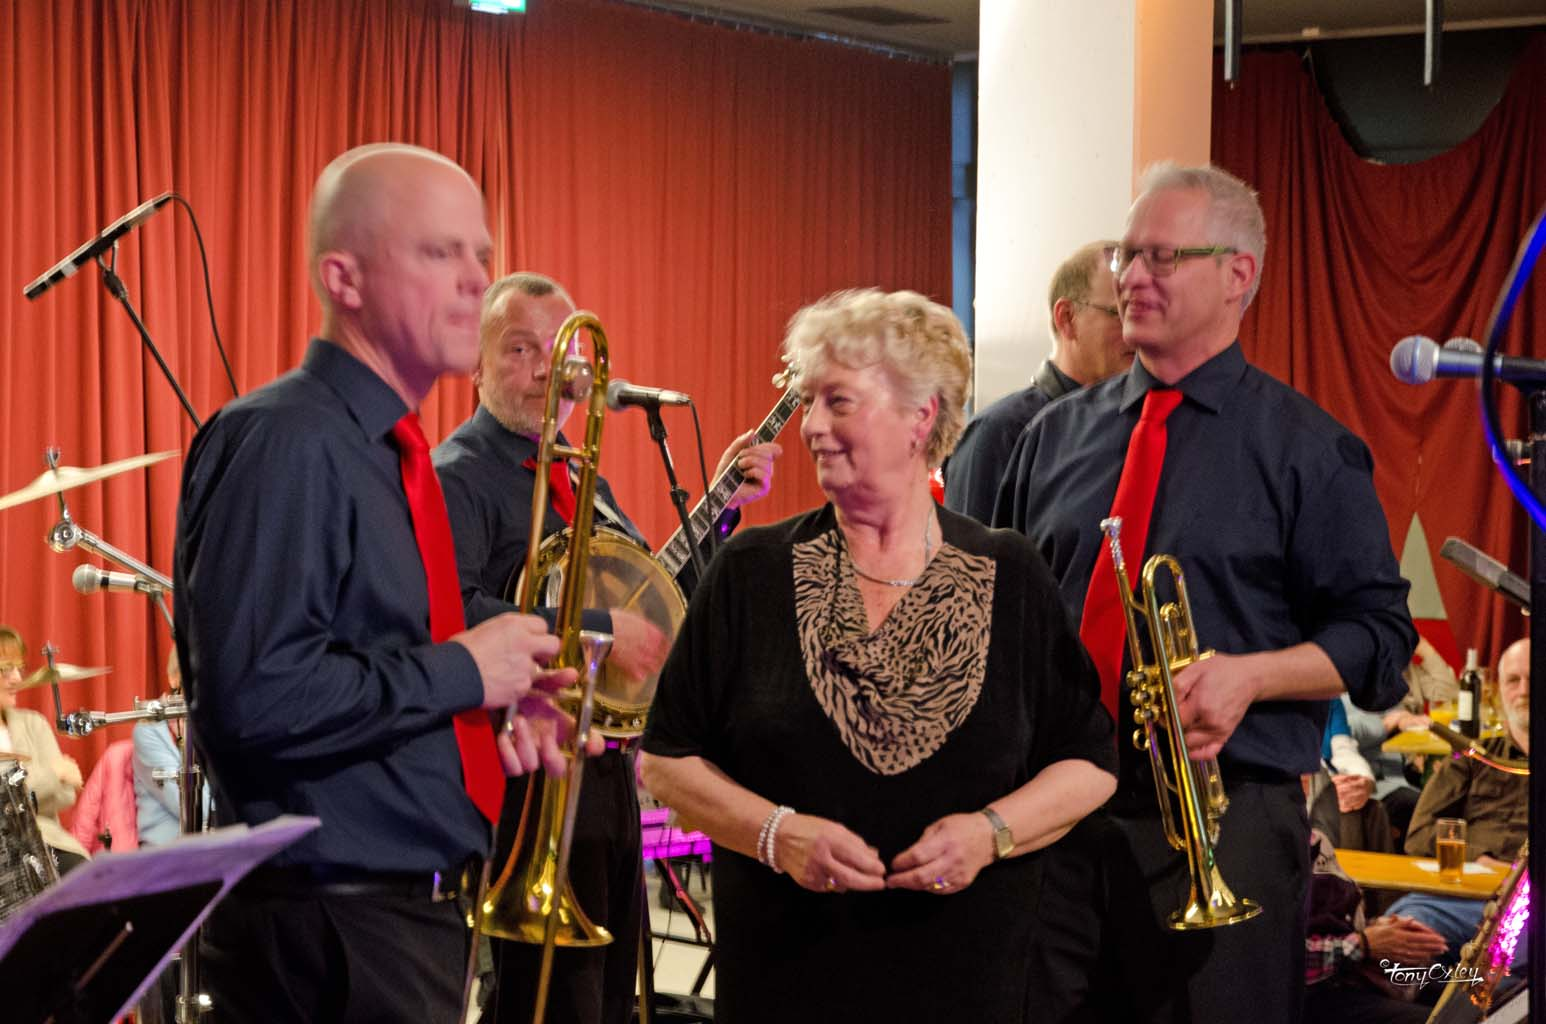 Old Merry Tale Jazzband - Jazz Party Mit Der Old Merry Tale Jazzband